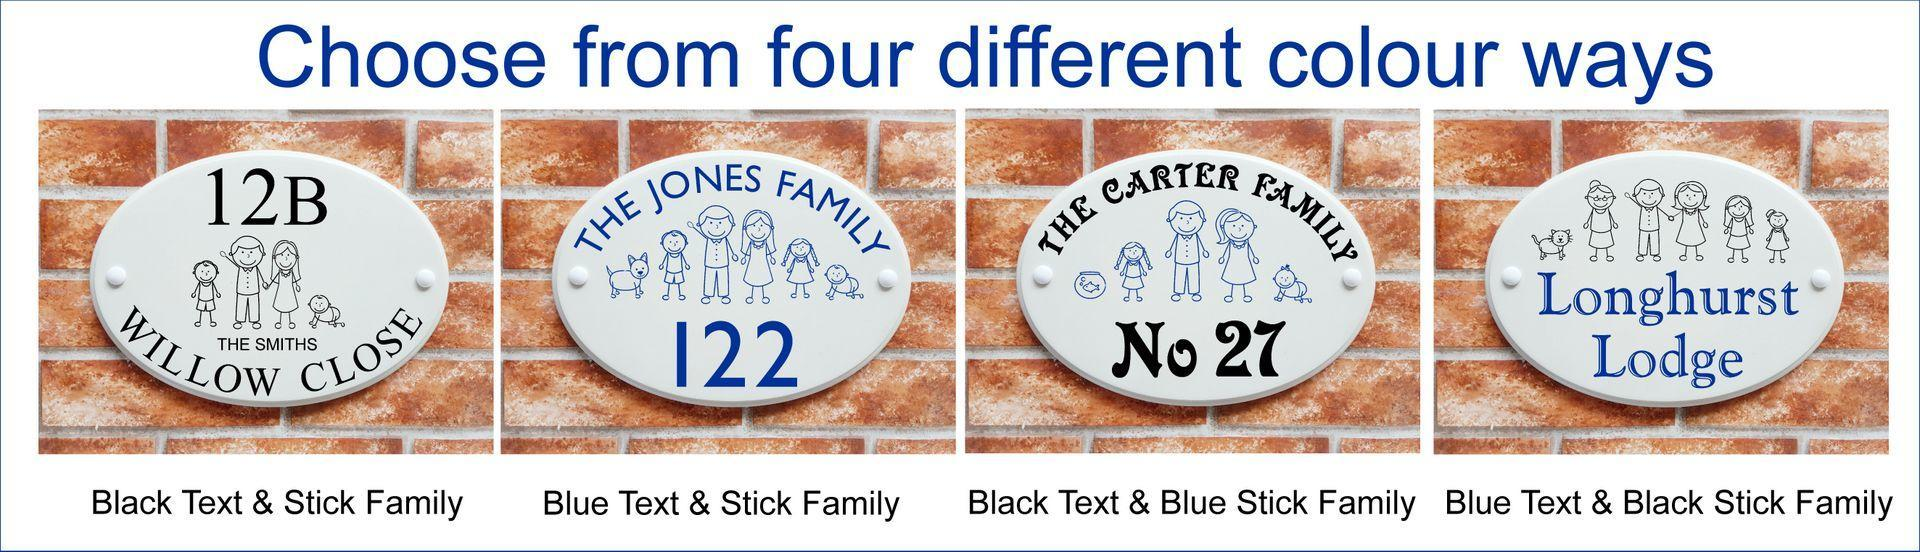 Colour way options for printed stick people signs